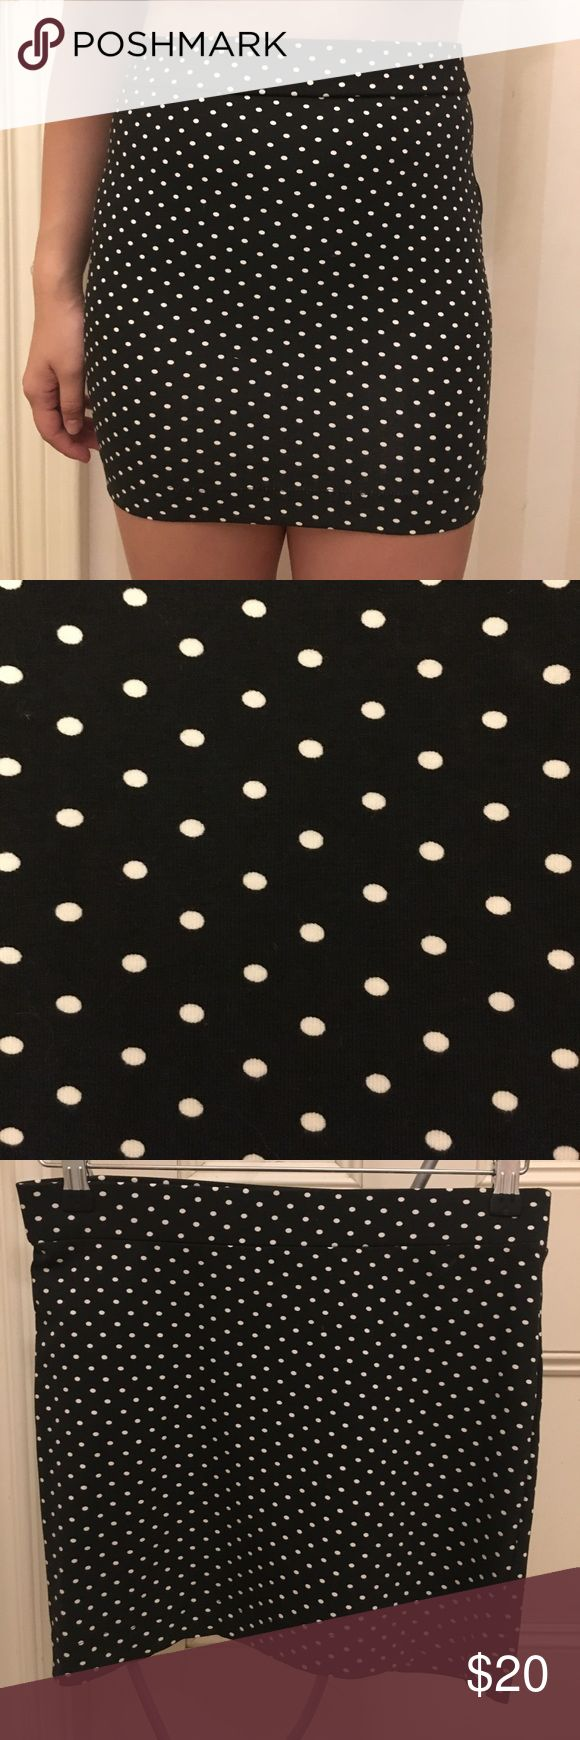 Black tube skirt with white poke-a-dots! Never worn black tube skirt with white poke-a-dots. Bought in the Netherlands. Store: The Sting/ Brand: Sutherland. Size S. 92% cotton and 8% spandex. Machine washable. Sutherland Skirts Pencil